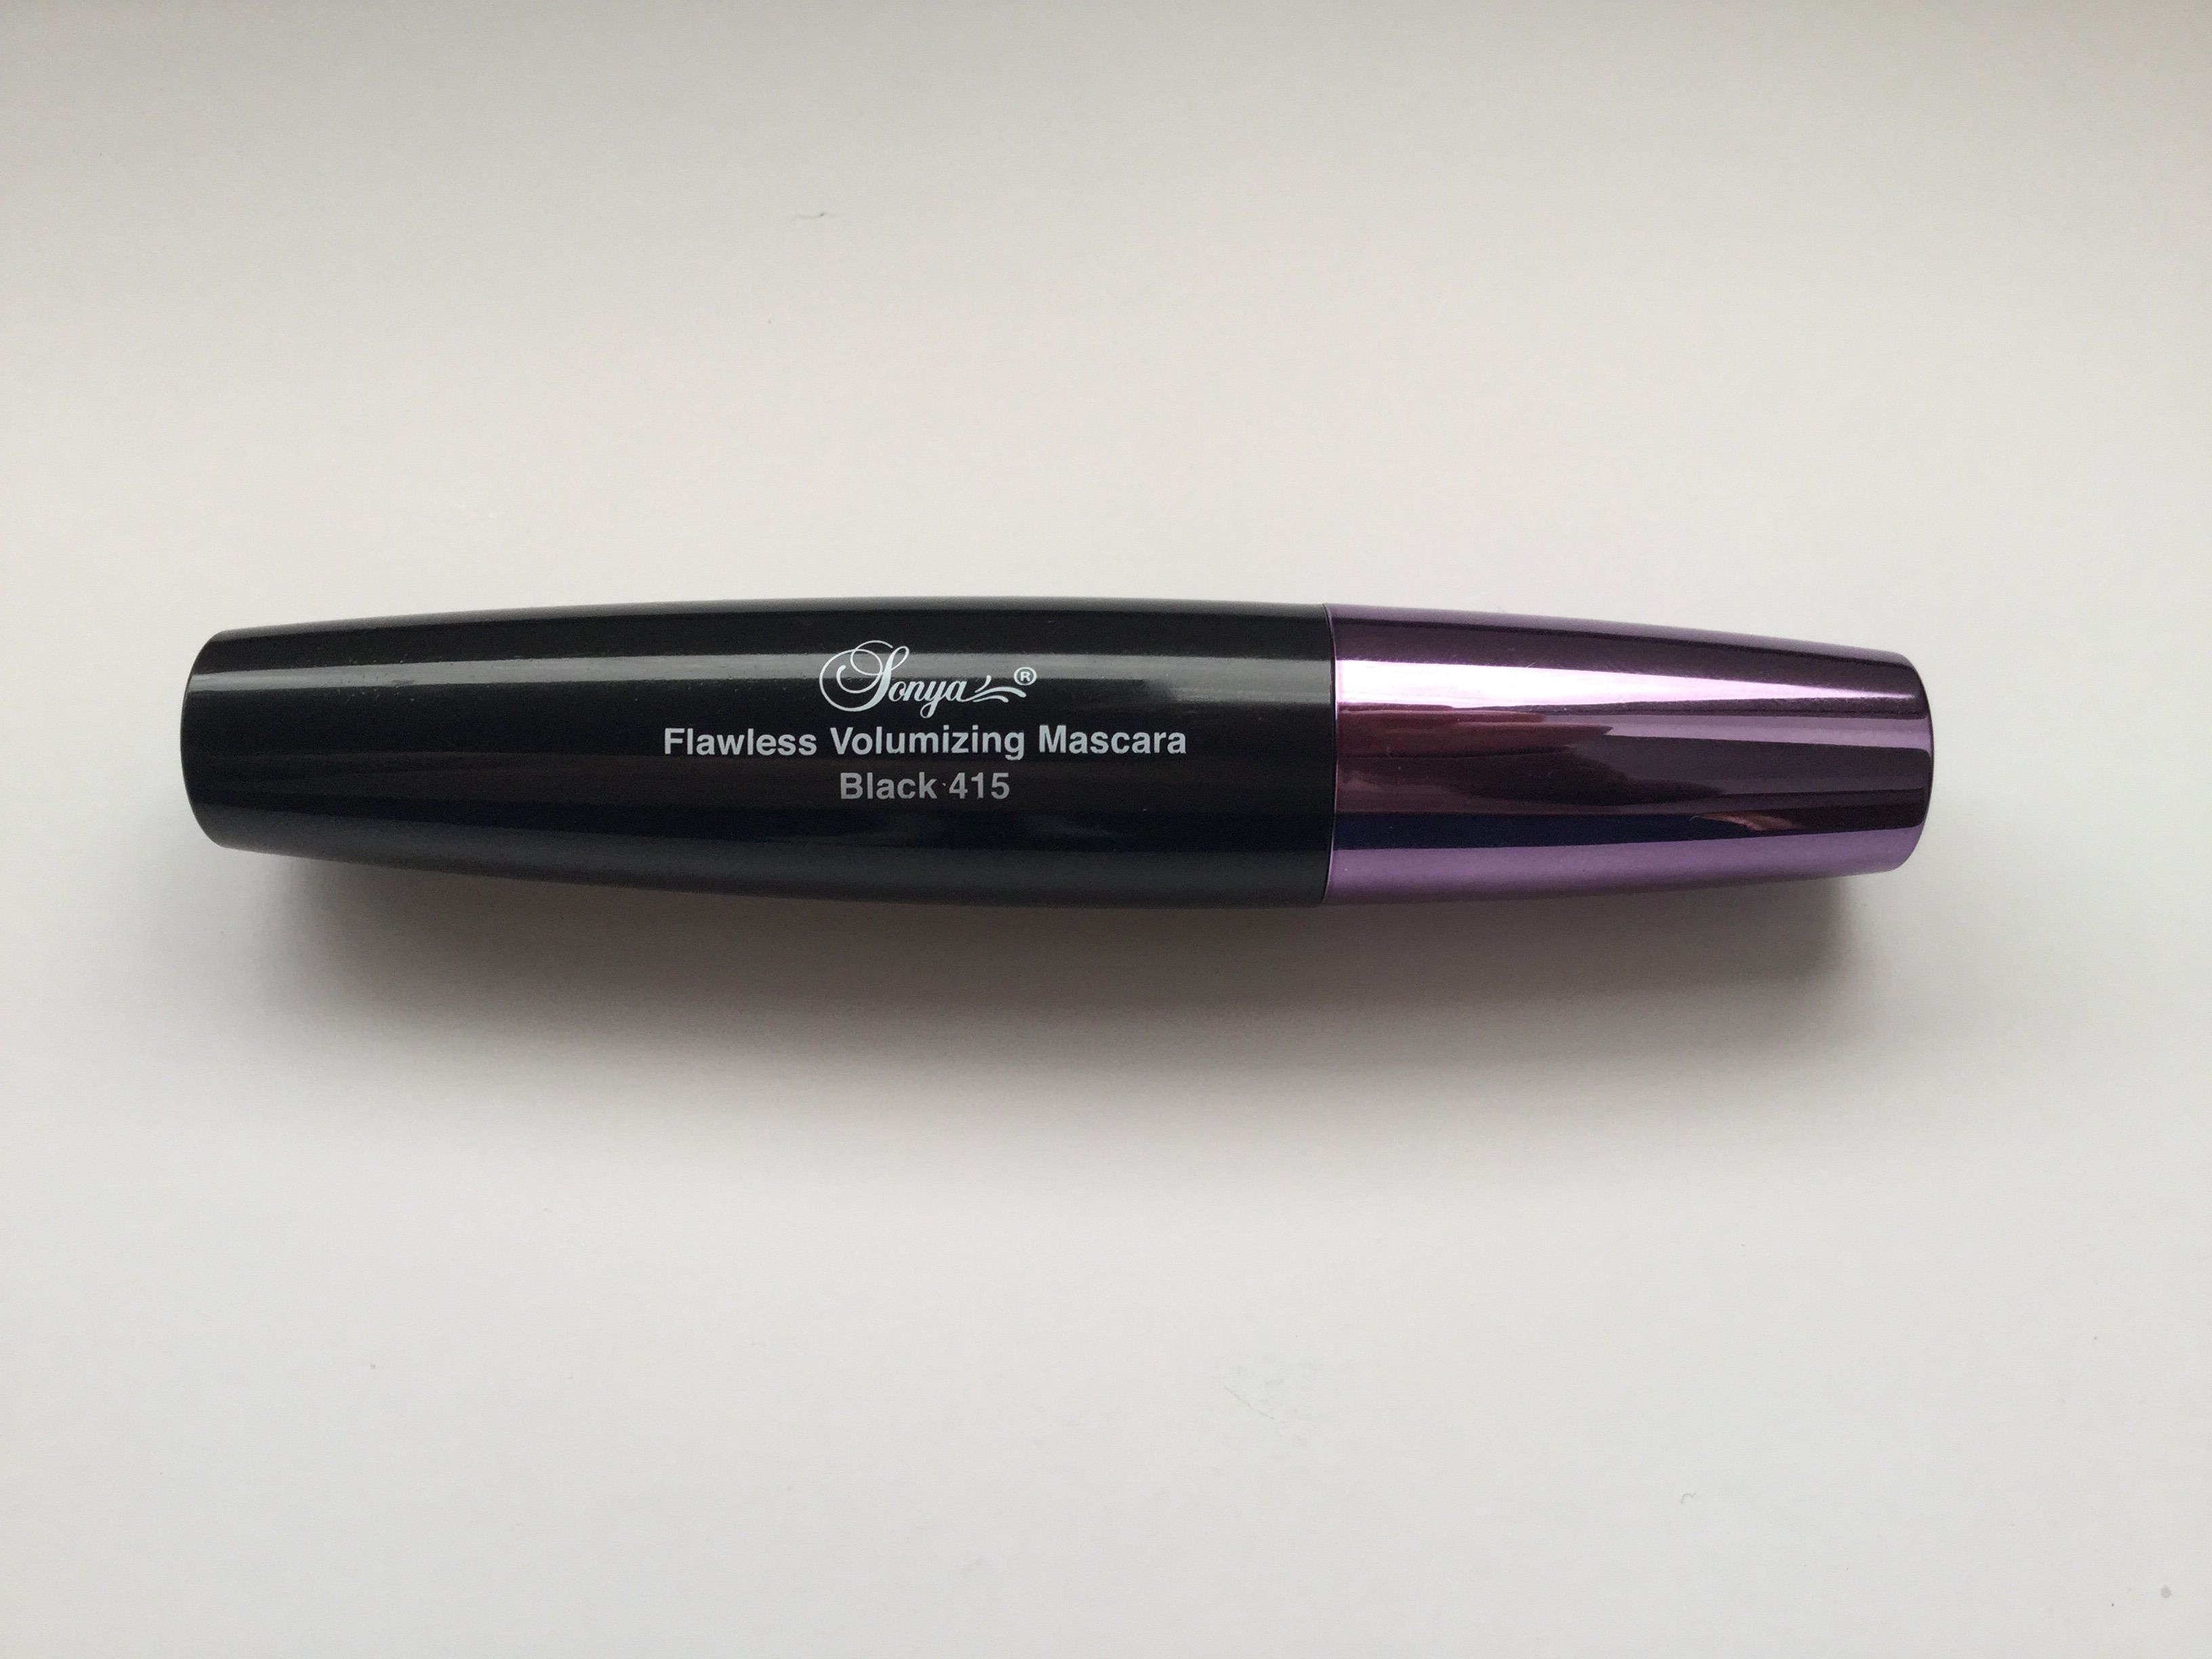 Sonya Flawless Volumizing Mascara